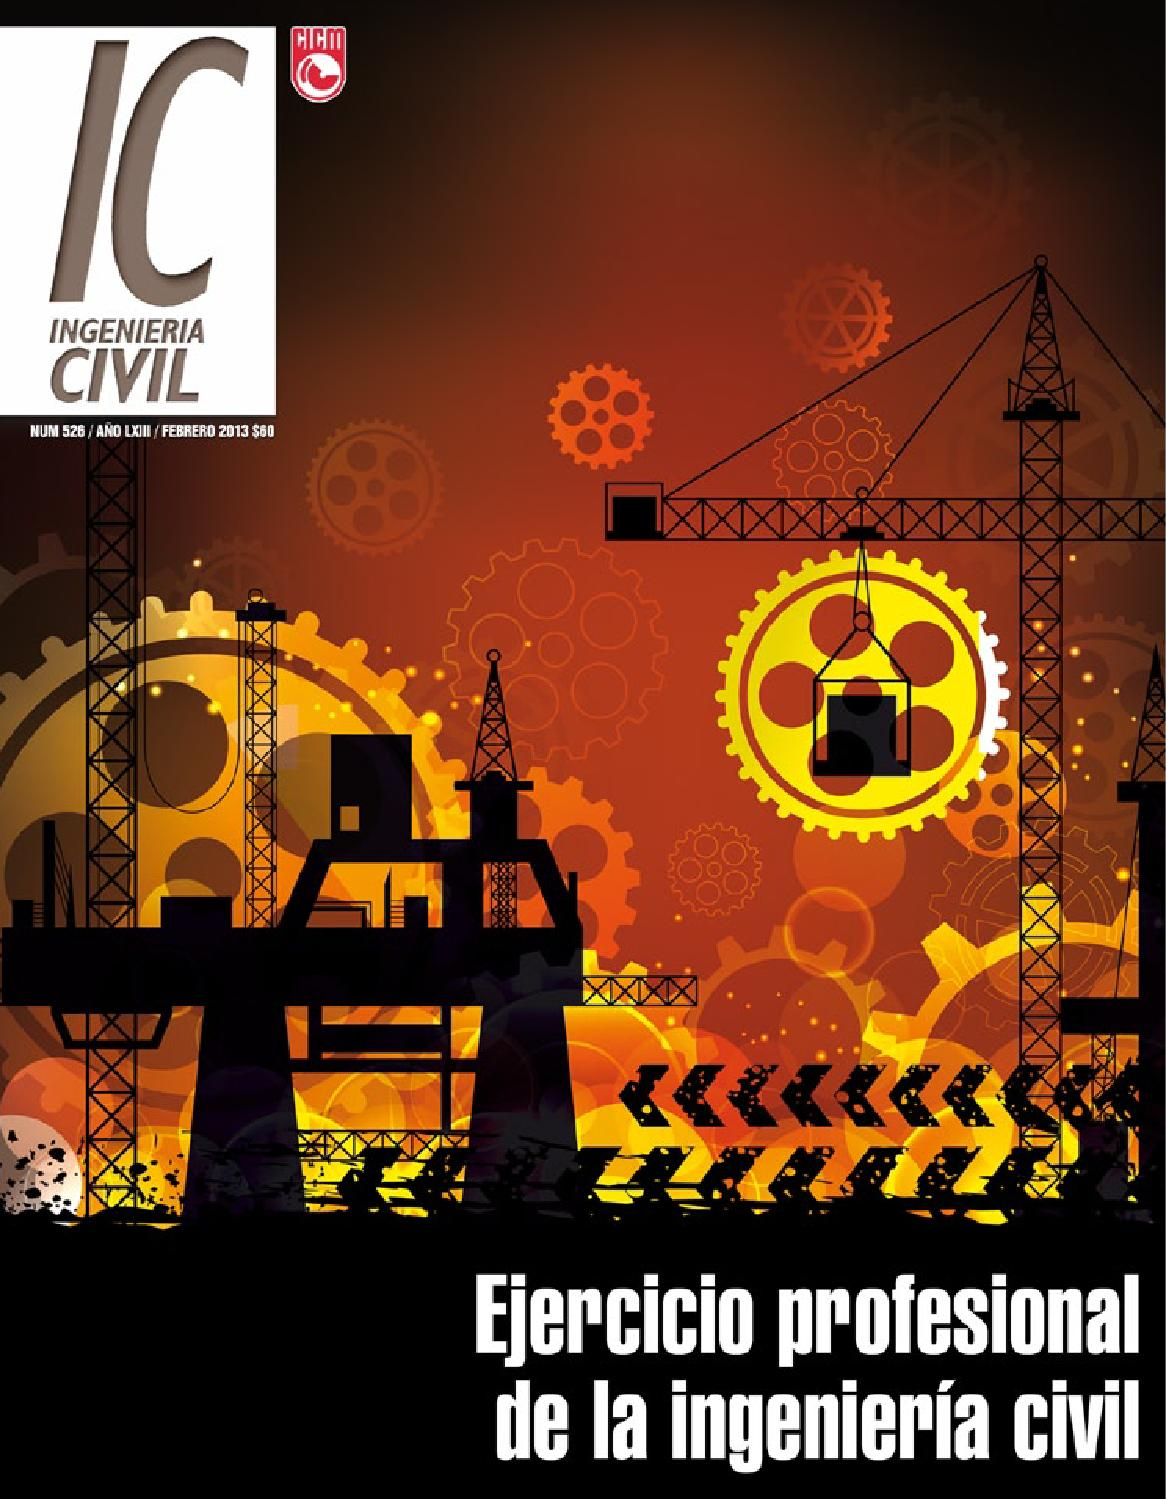 Revista Ingeniería Civil IC 526 febrero by Helios Comunicación - issuu